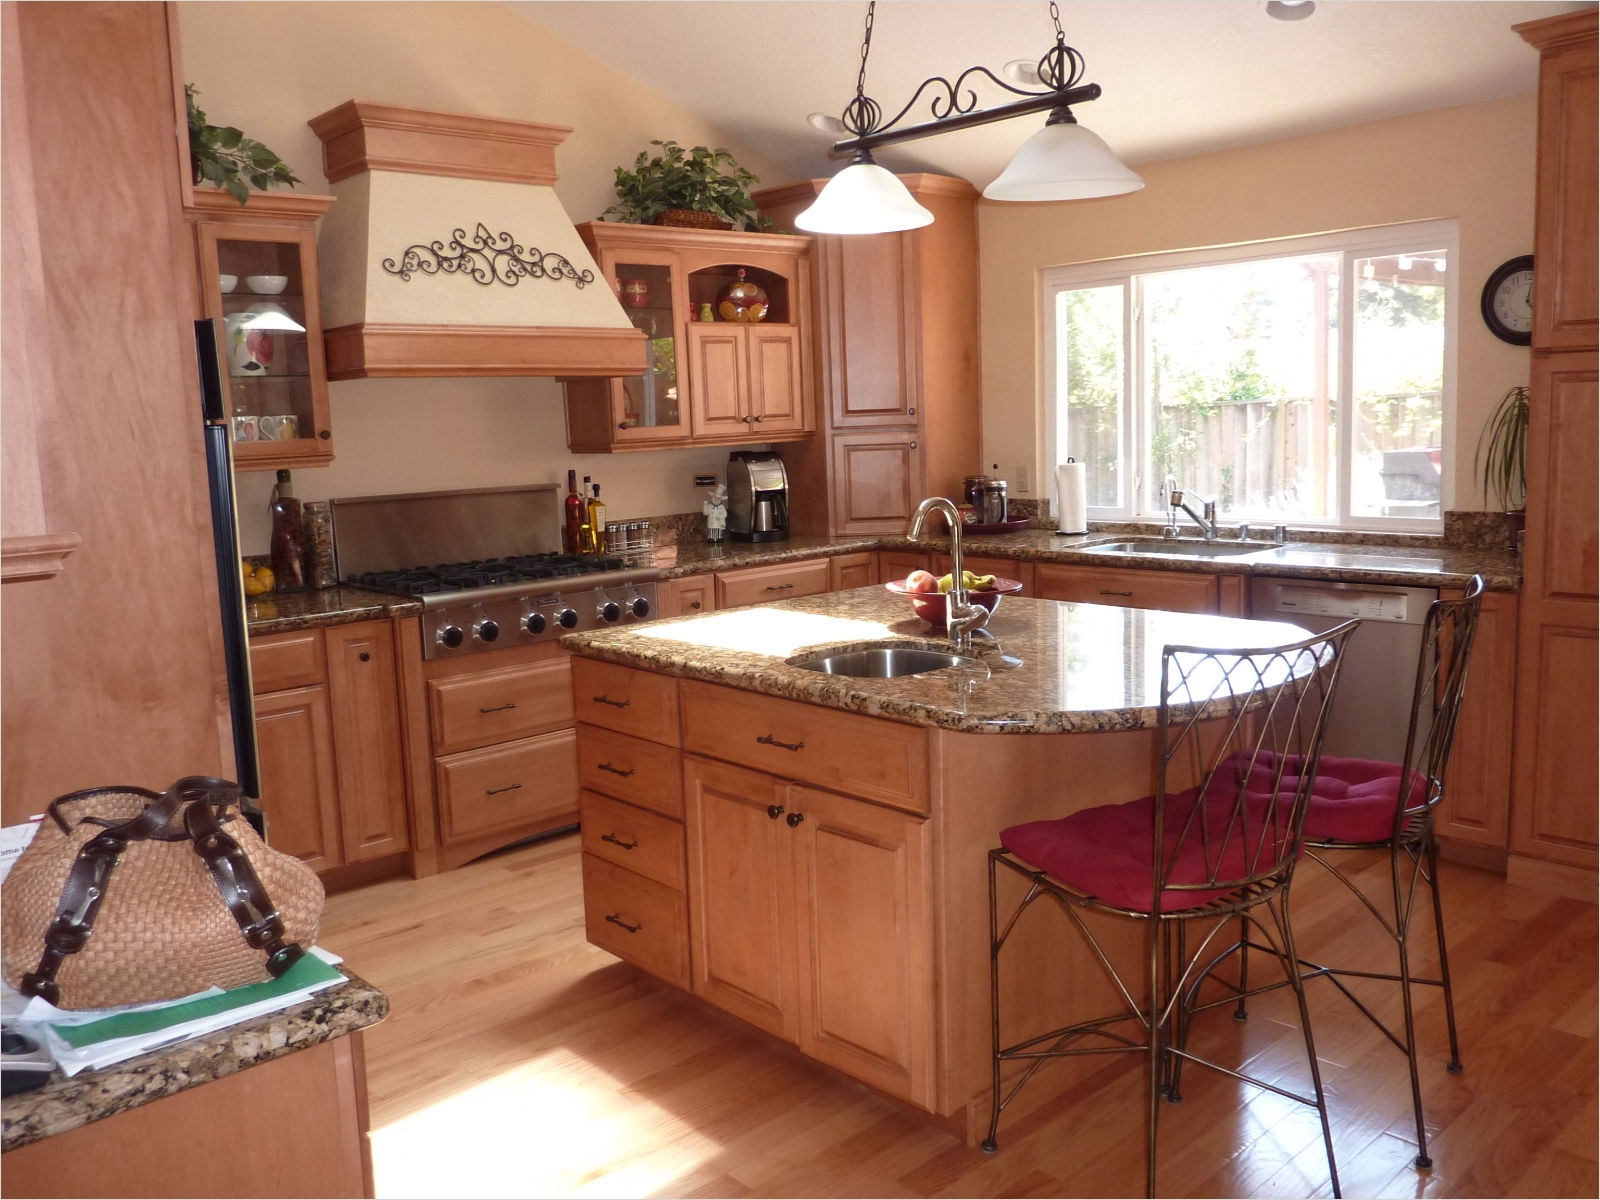 44 Perfect Ideas Small Kitchen Designs with islands 68 Kitchen island Ideas Home Design Roosa 5